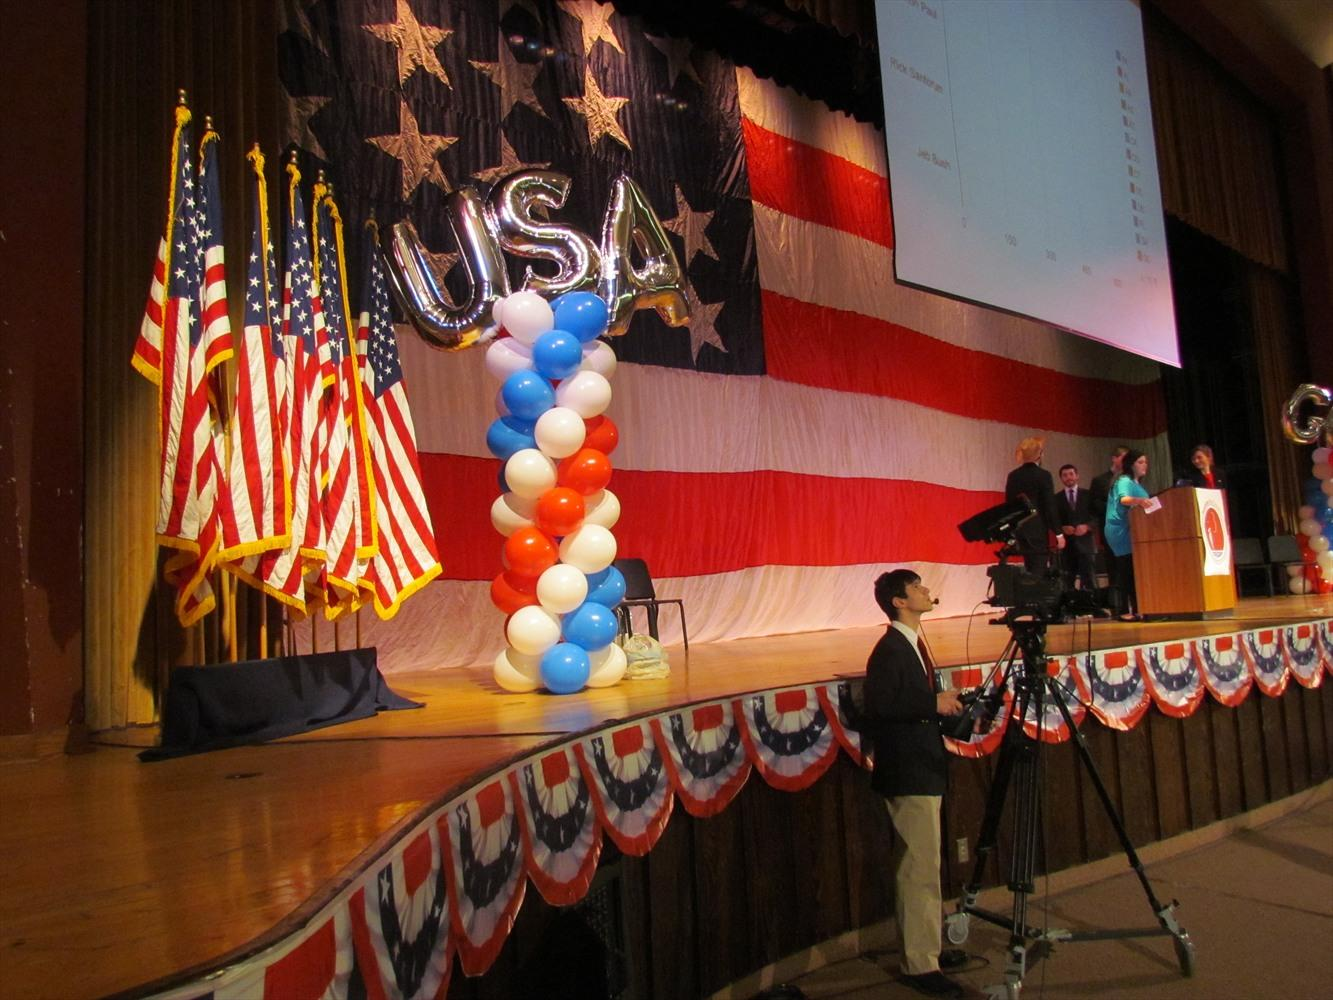 A scene from the stage of the 2012 Simulated Republican Convention at NPHS. The 2016 Simulated Convention coming up January 5th and 6th will offer students the opportunity to learn in the inner workings of American politics and Presidential nominations.